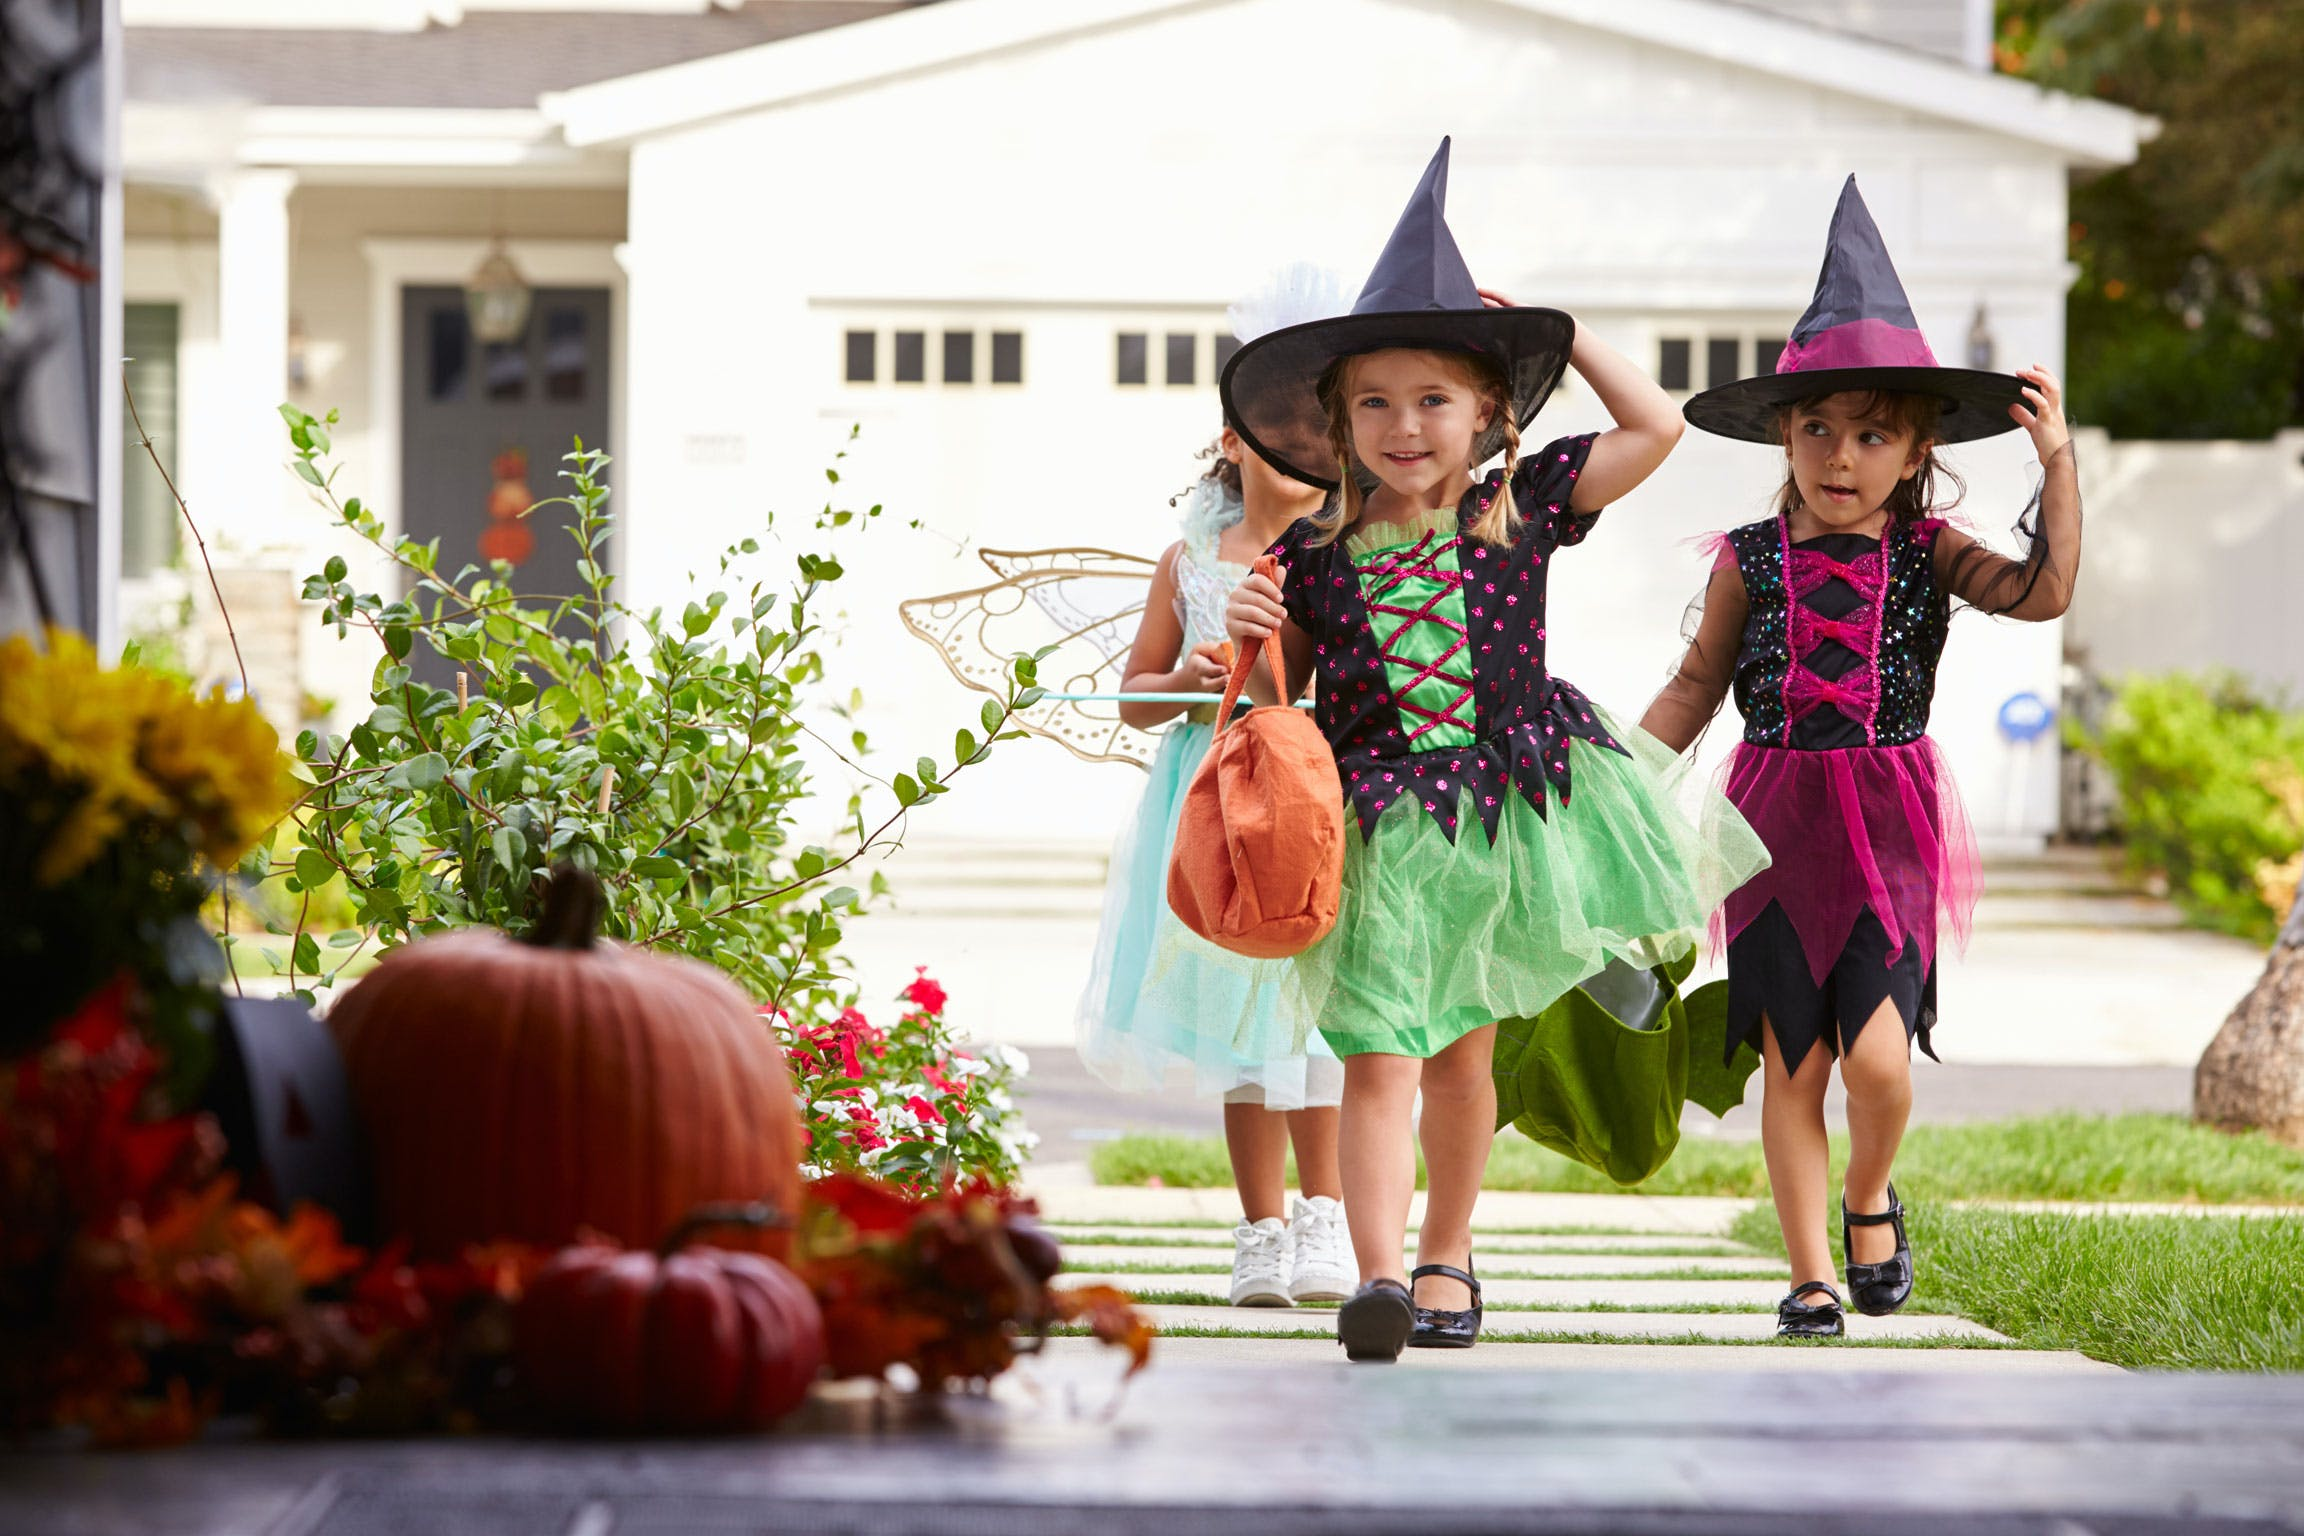 Fall-Fun-Family-Friendly-Halloween-Activities-To-Do-in-Fort-Bend